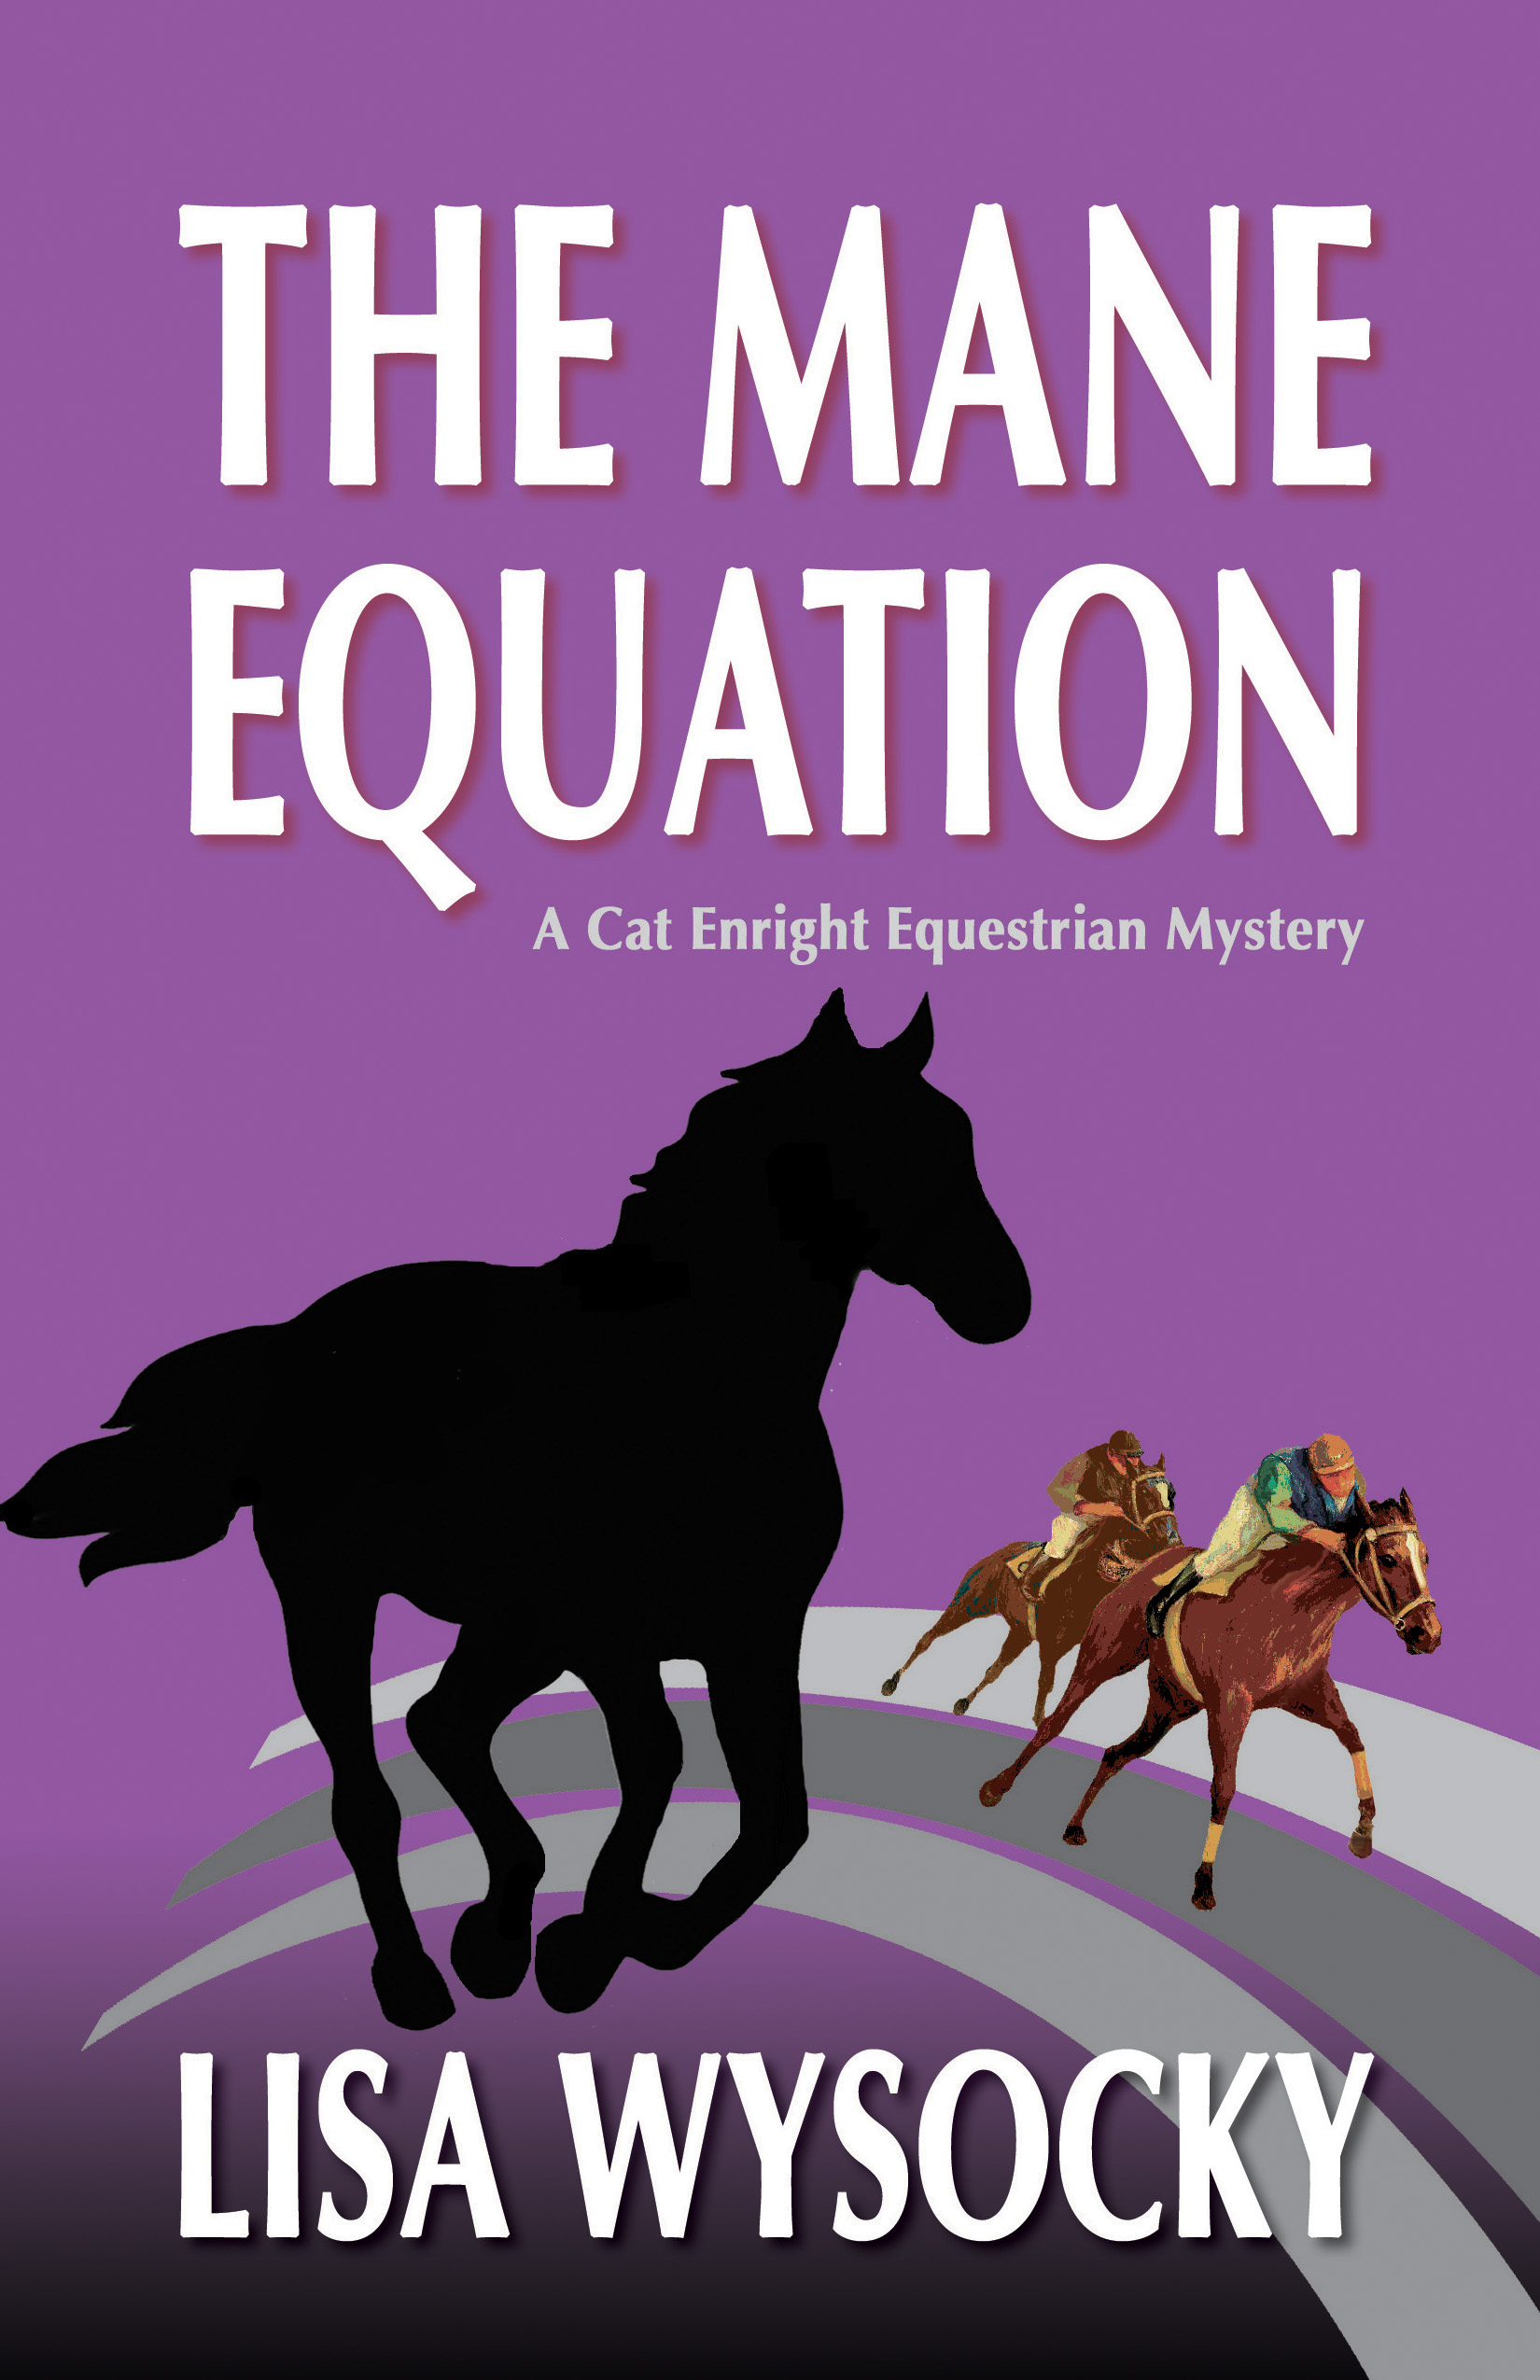 The Mane Equation